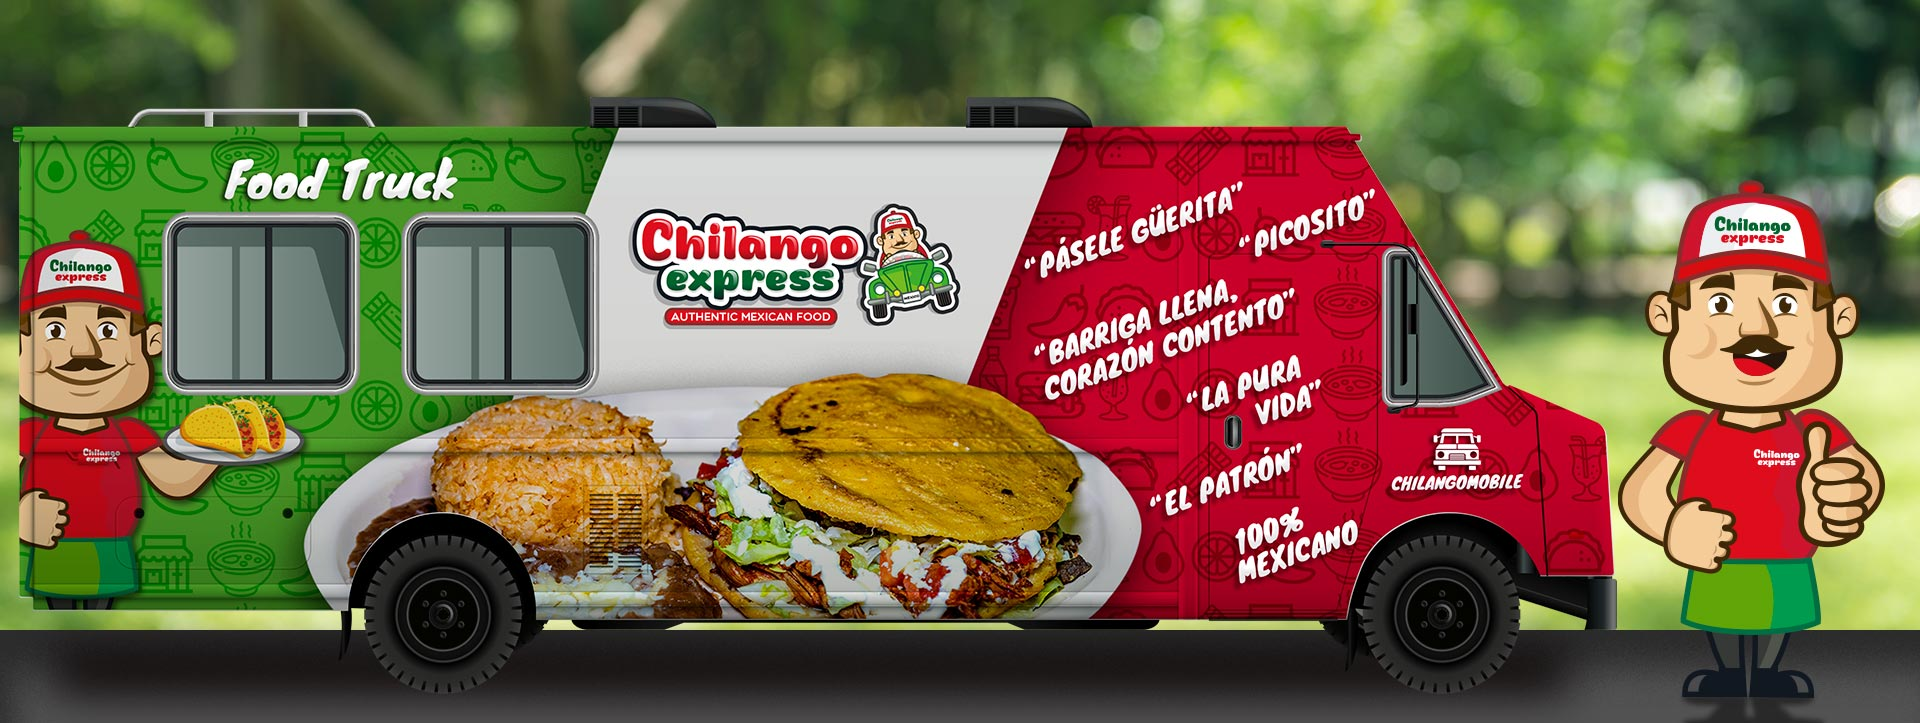 Chilango Express, authentic Mexican food